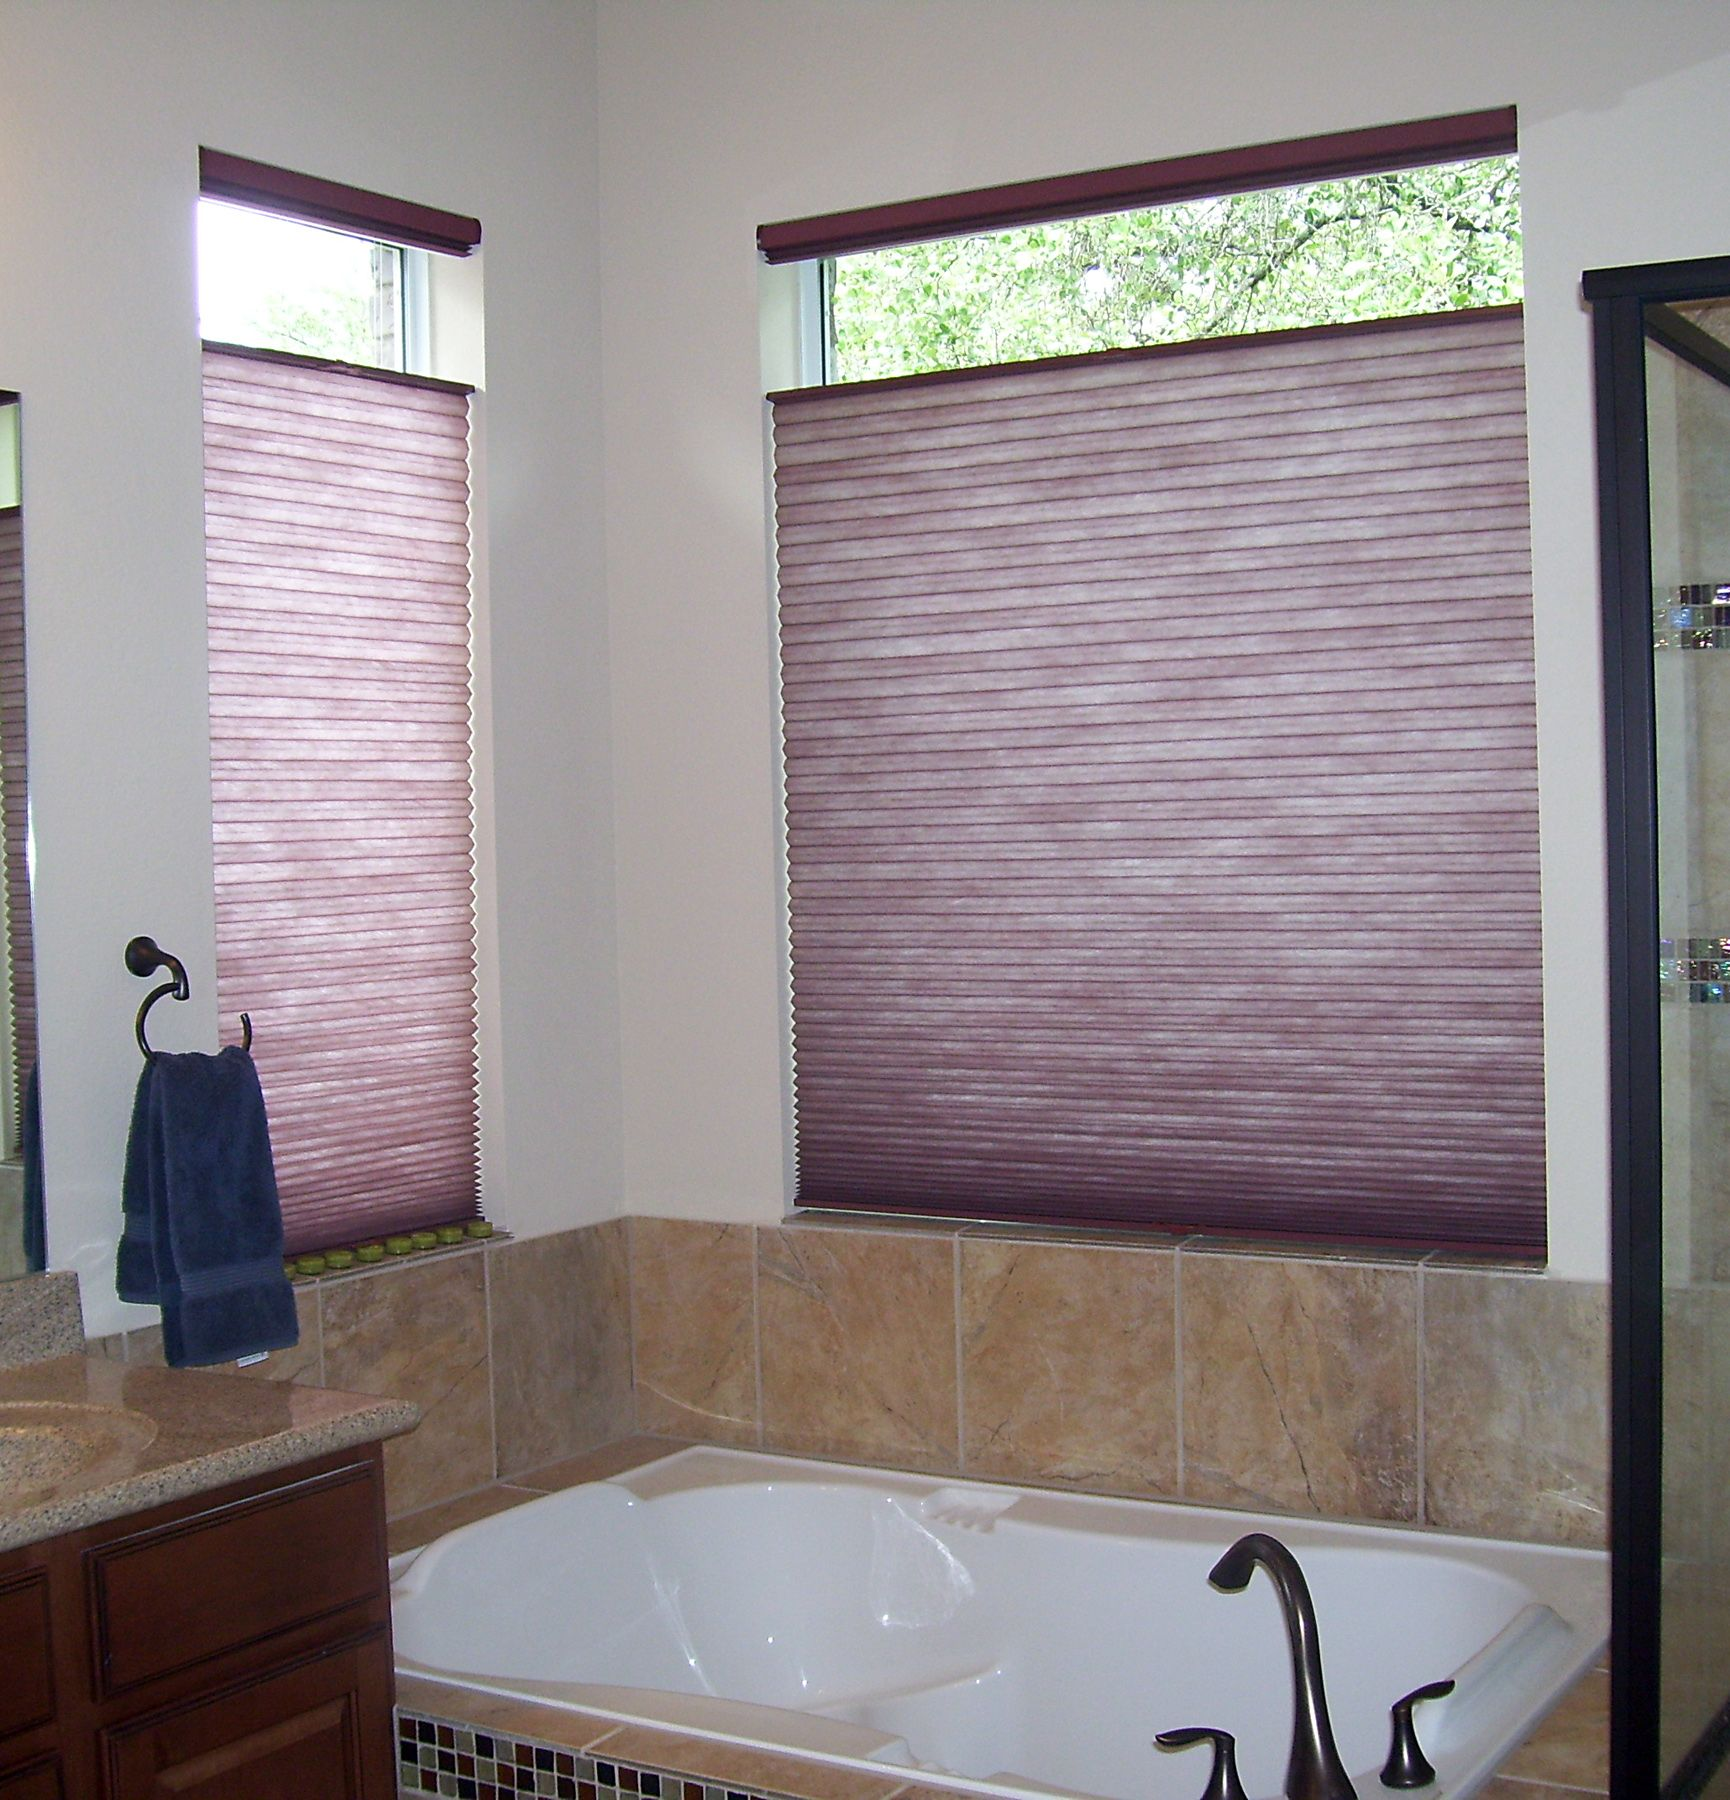 Bathroom Window Blinds And Shades after photo of bathroom with honeycomb shades- great for privacy